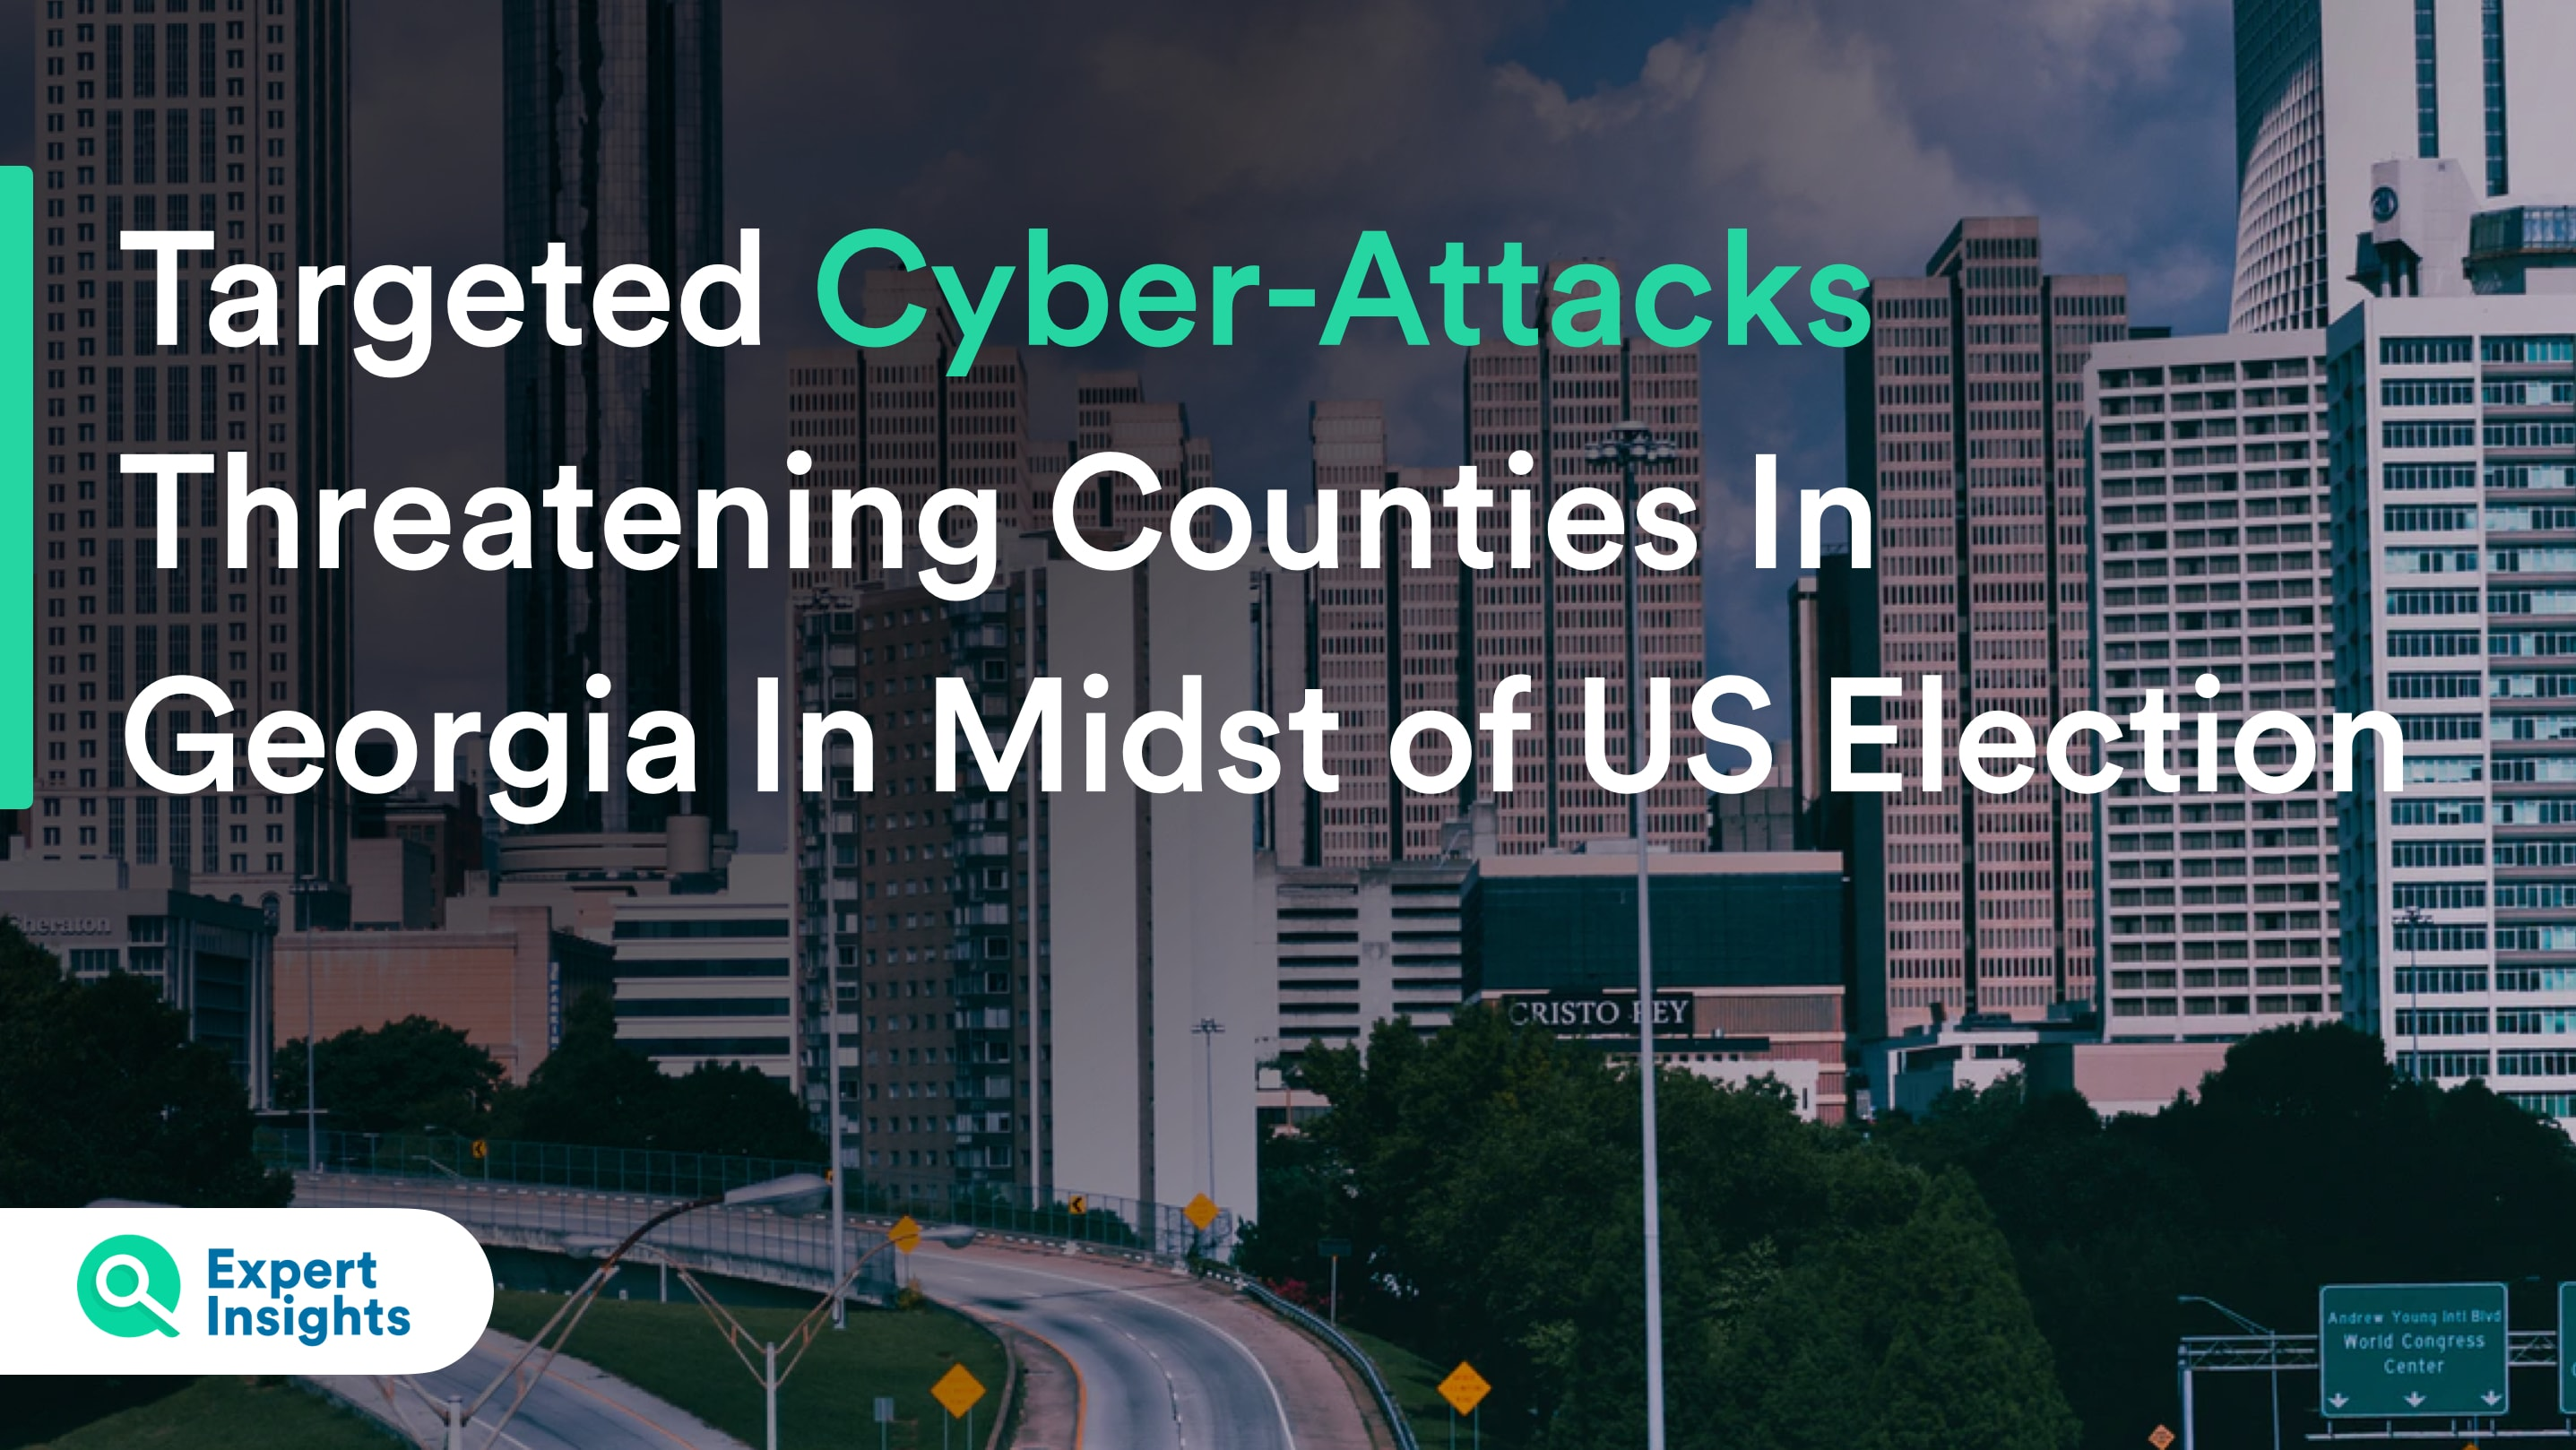 Targeted Cyber-Attacks Threatening Counties In Georgia In Midst of US Election